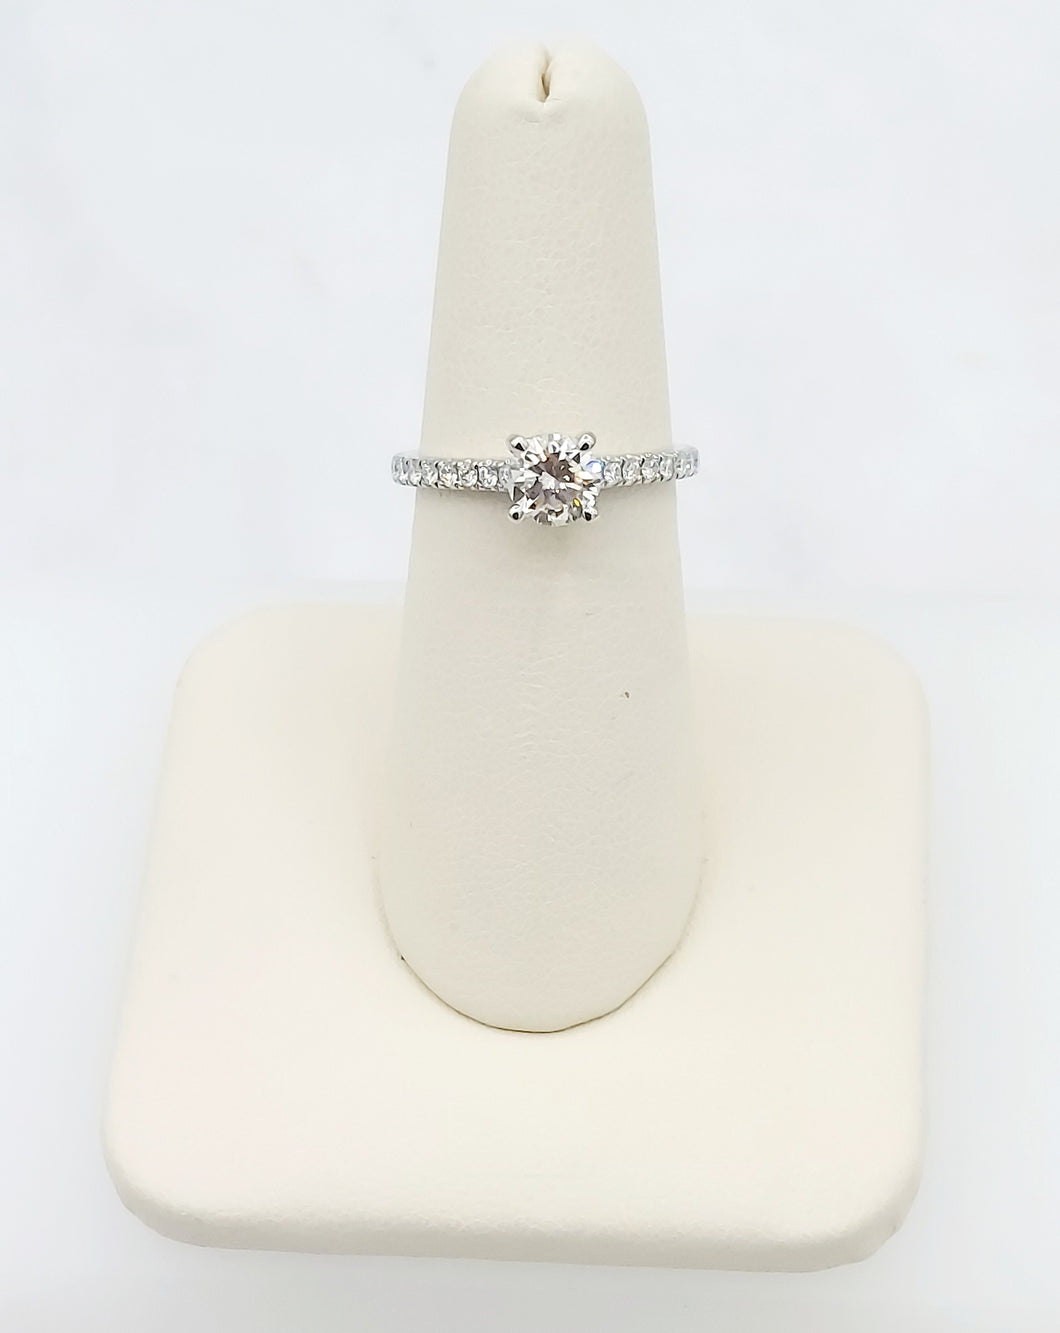 14K White Gold Brilliant Round Engagement Ring with Diamonds on the Band and Hiden Diamond Halo